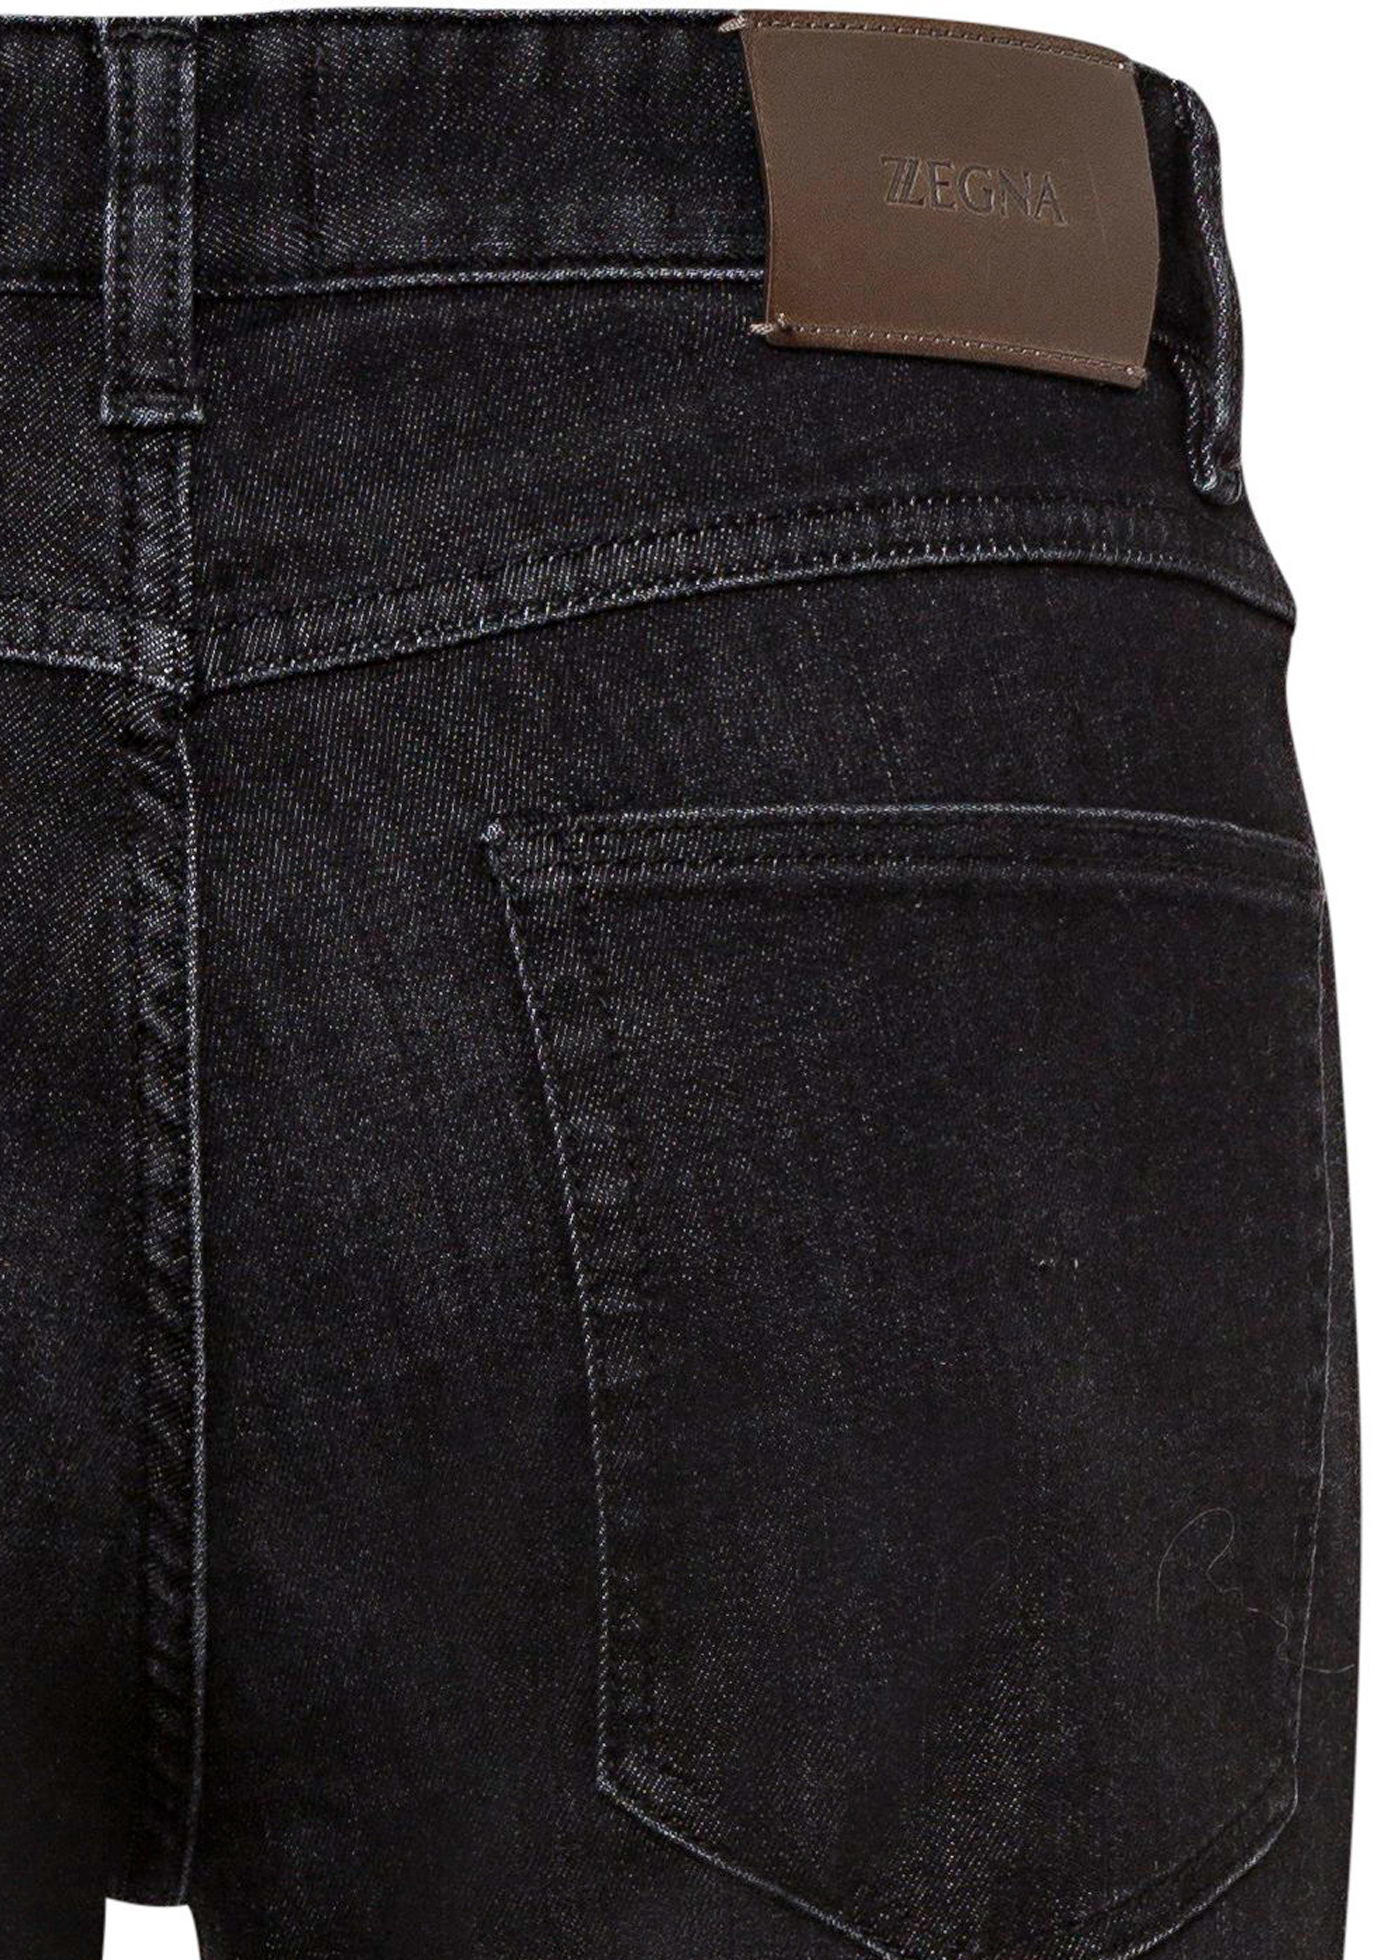 LUXE TWILL BLACK DENIM image number 3